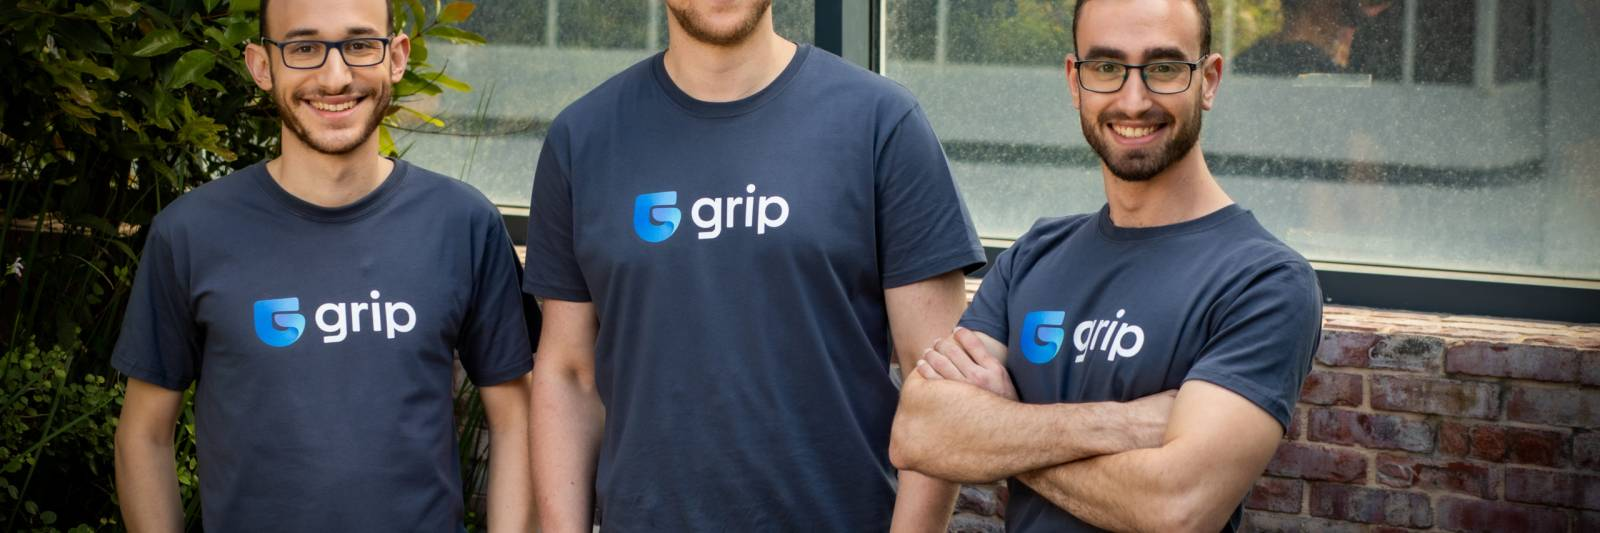 grip security grabs more cash to lead 'gold rush' to